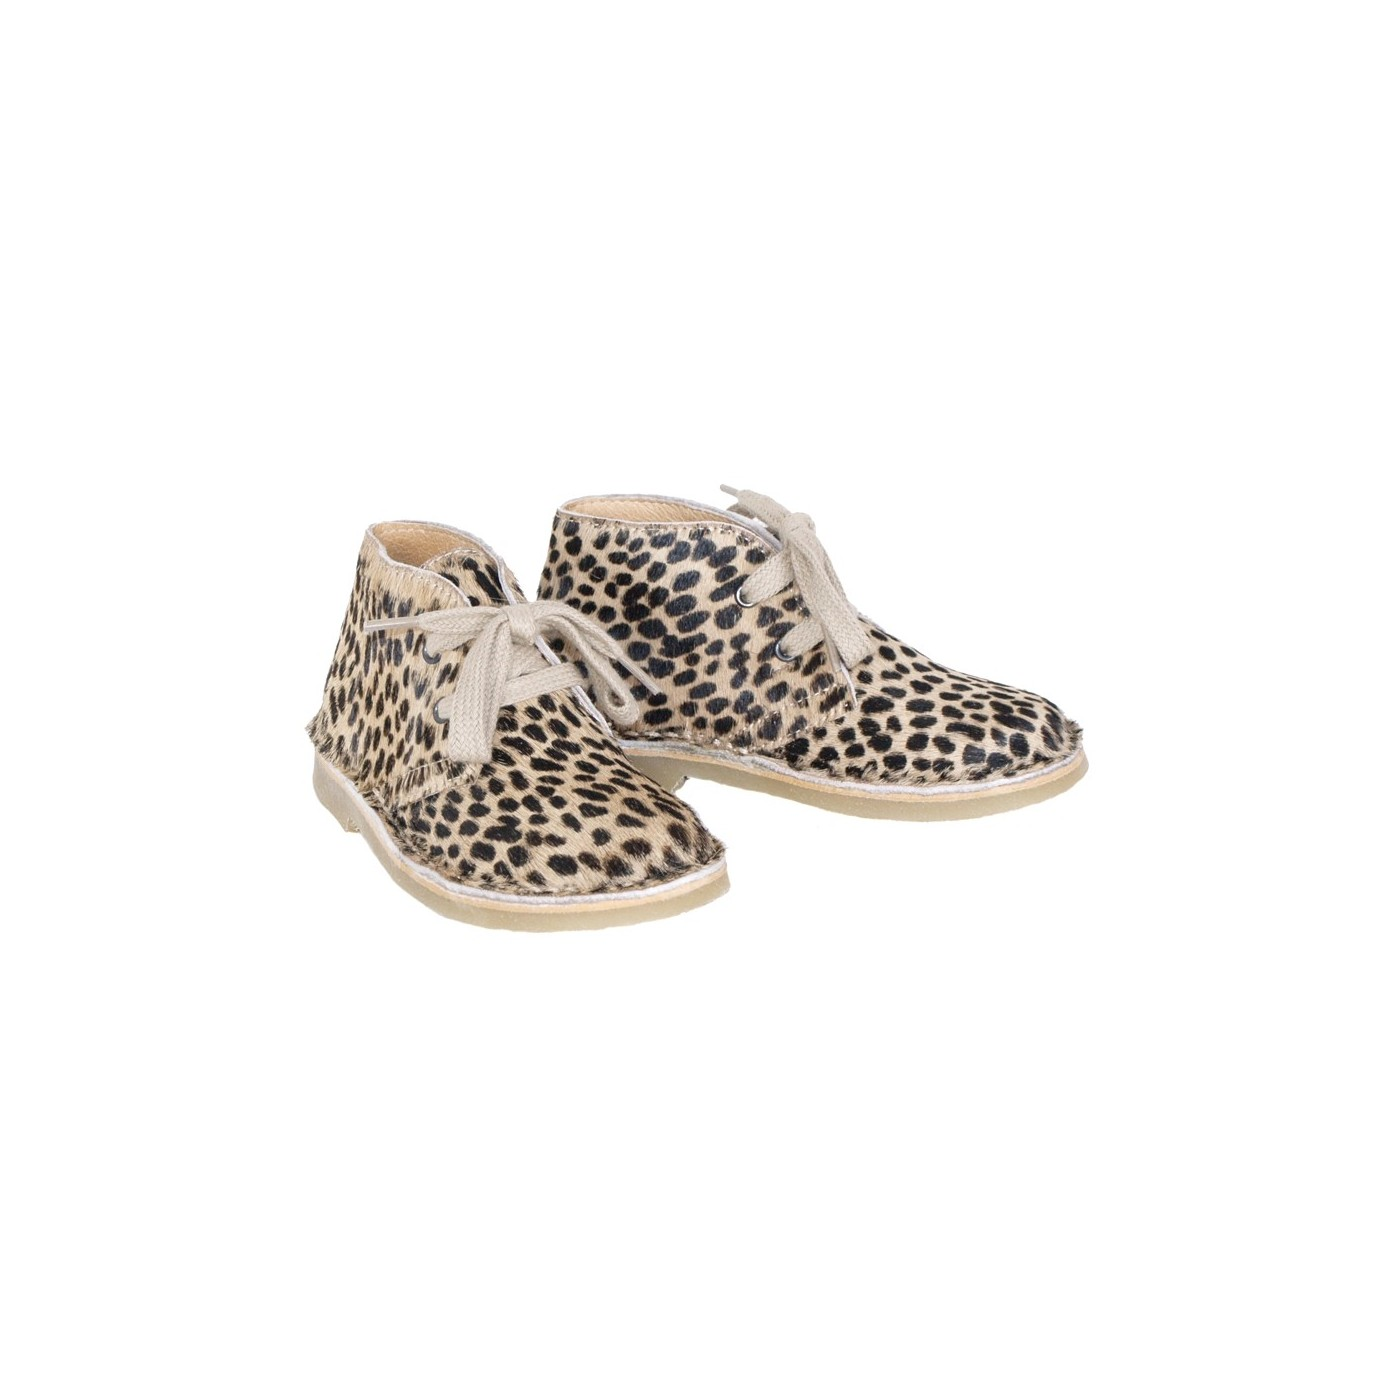 chaussures leopard yadayada. Black Bedroom Furniture Sets. Home Design Ideas